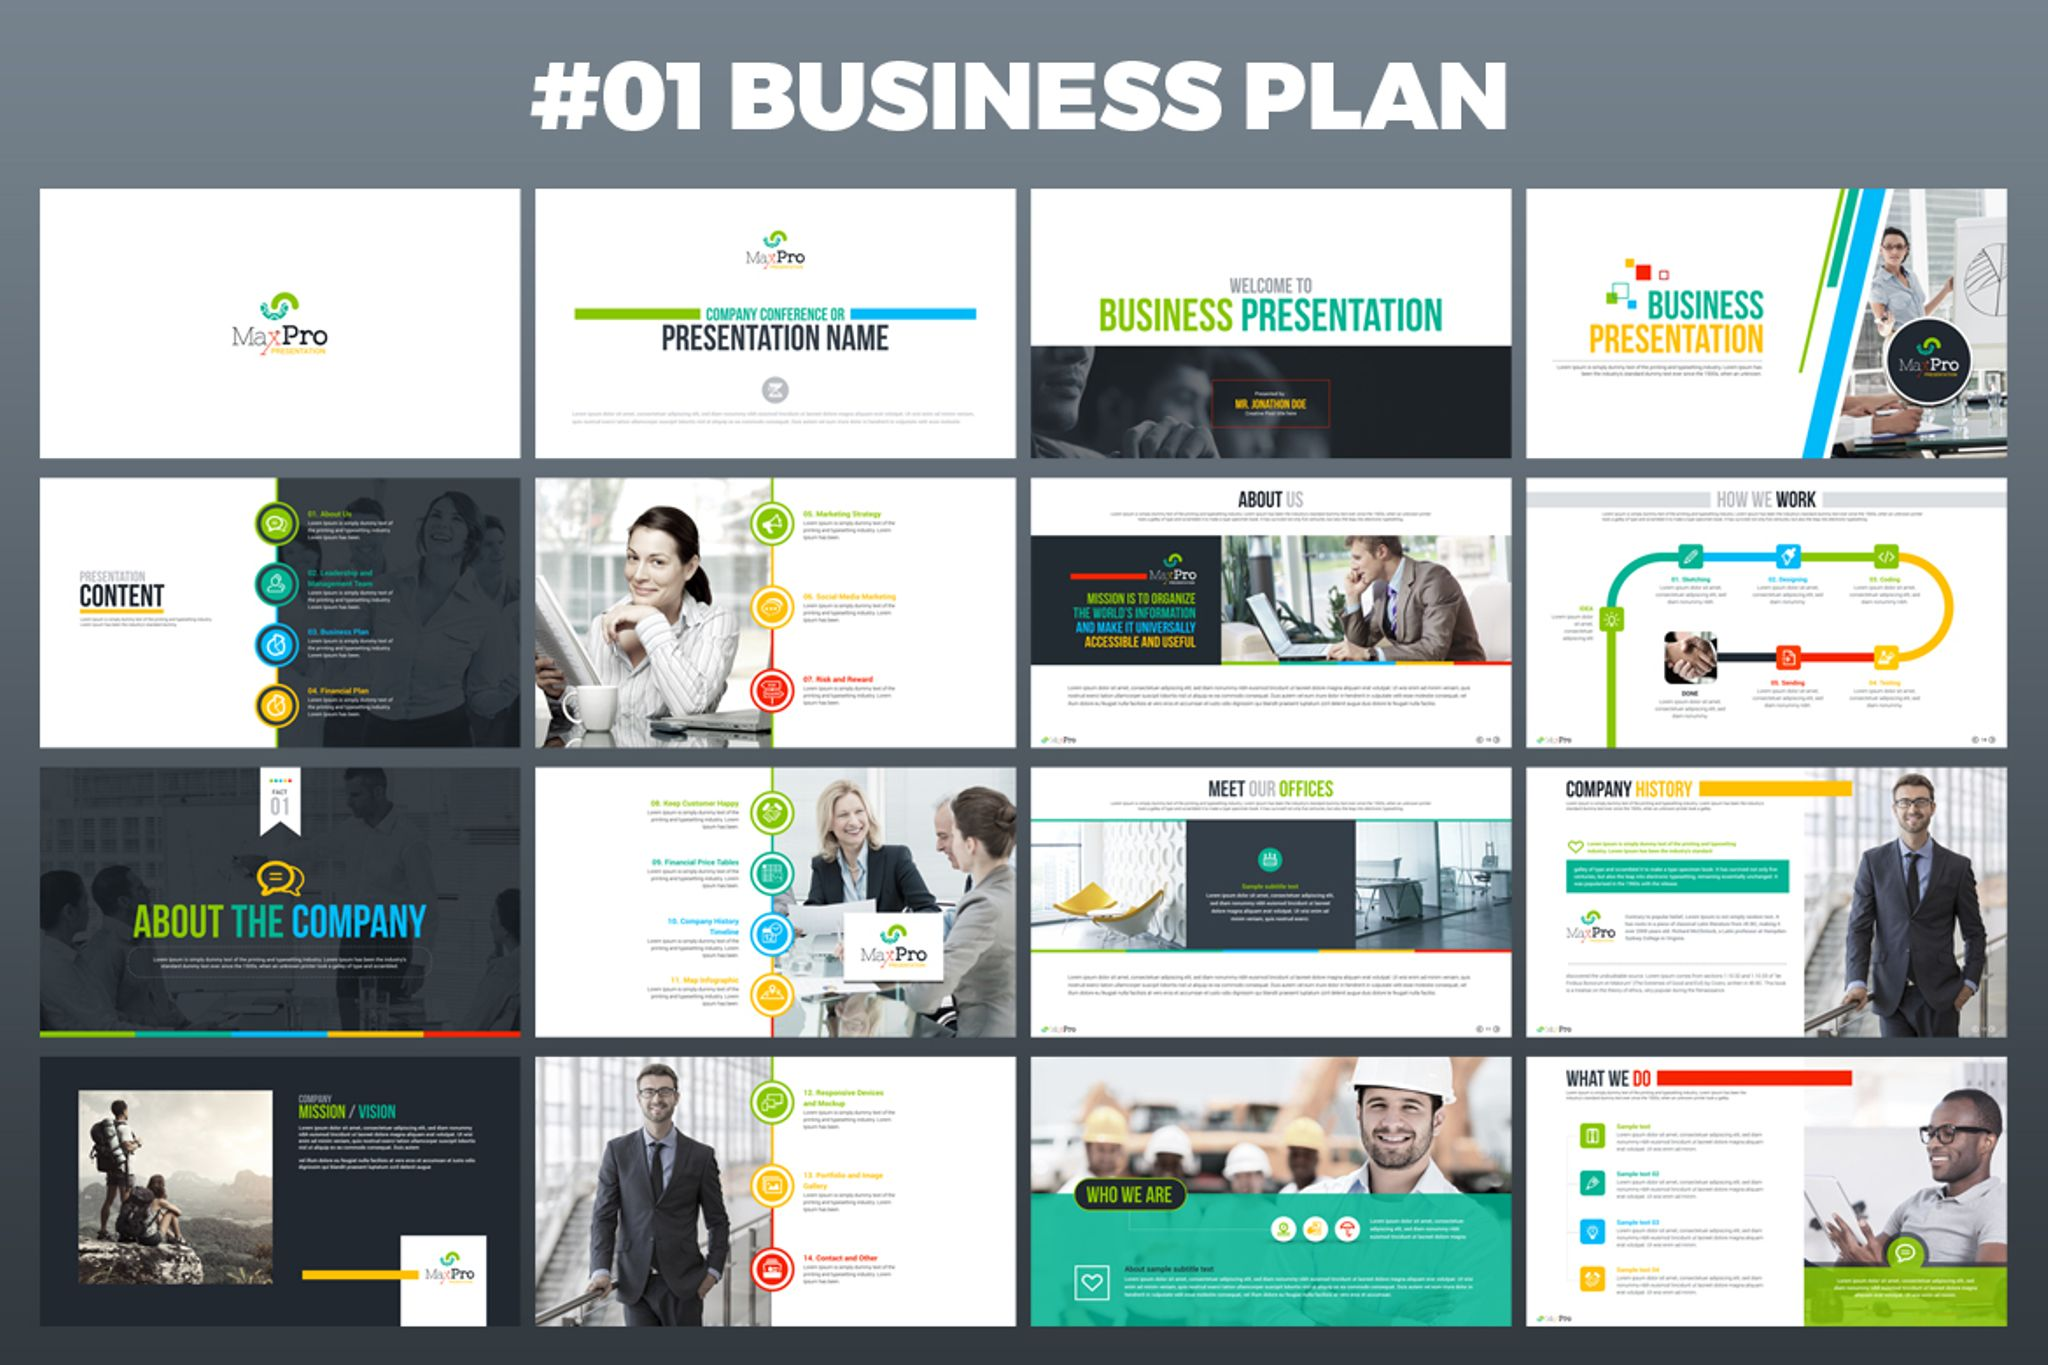 Maxpro business plan powerpoint template 66751 zoom in cheaphphosting